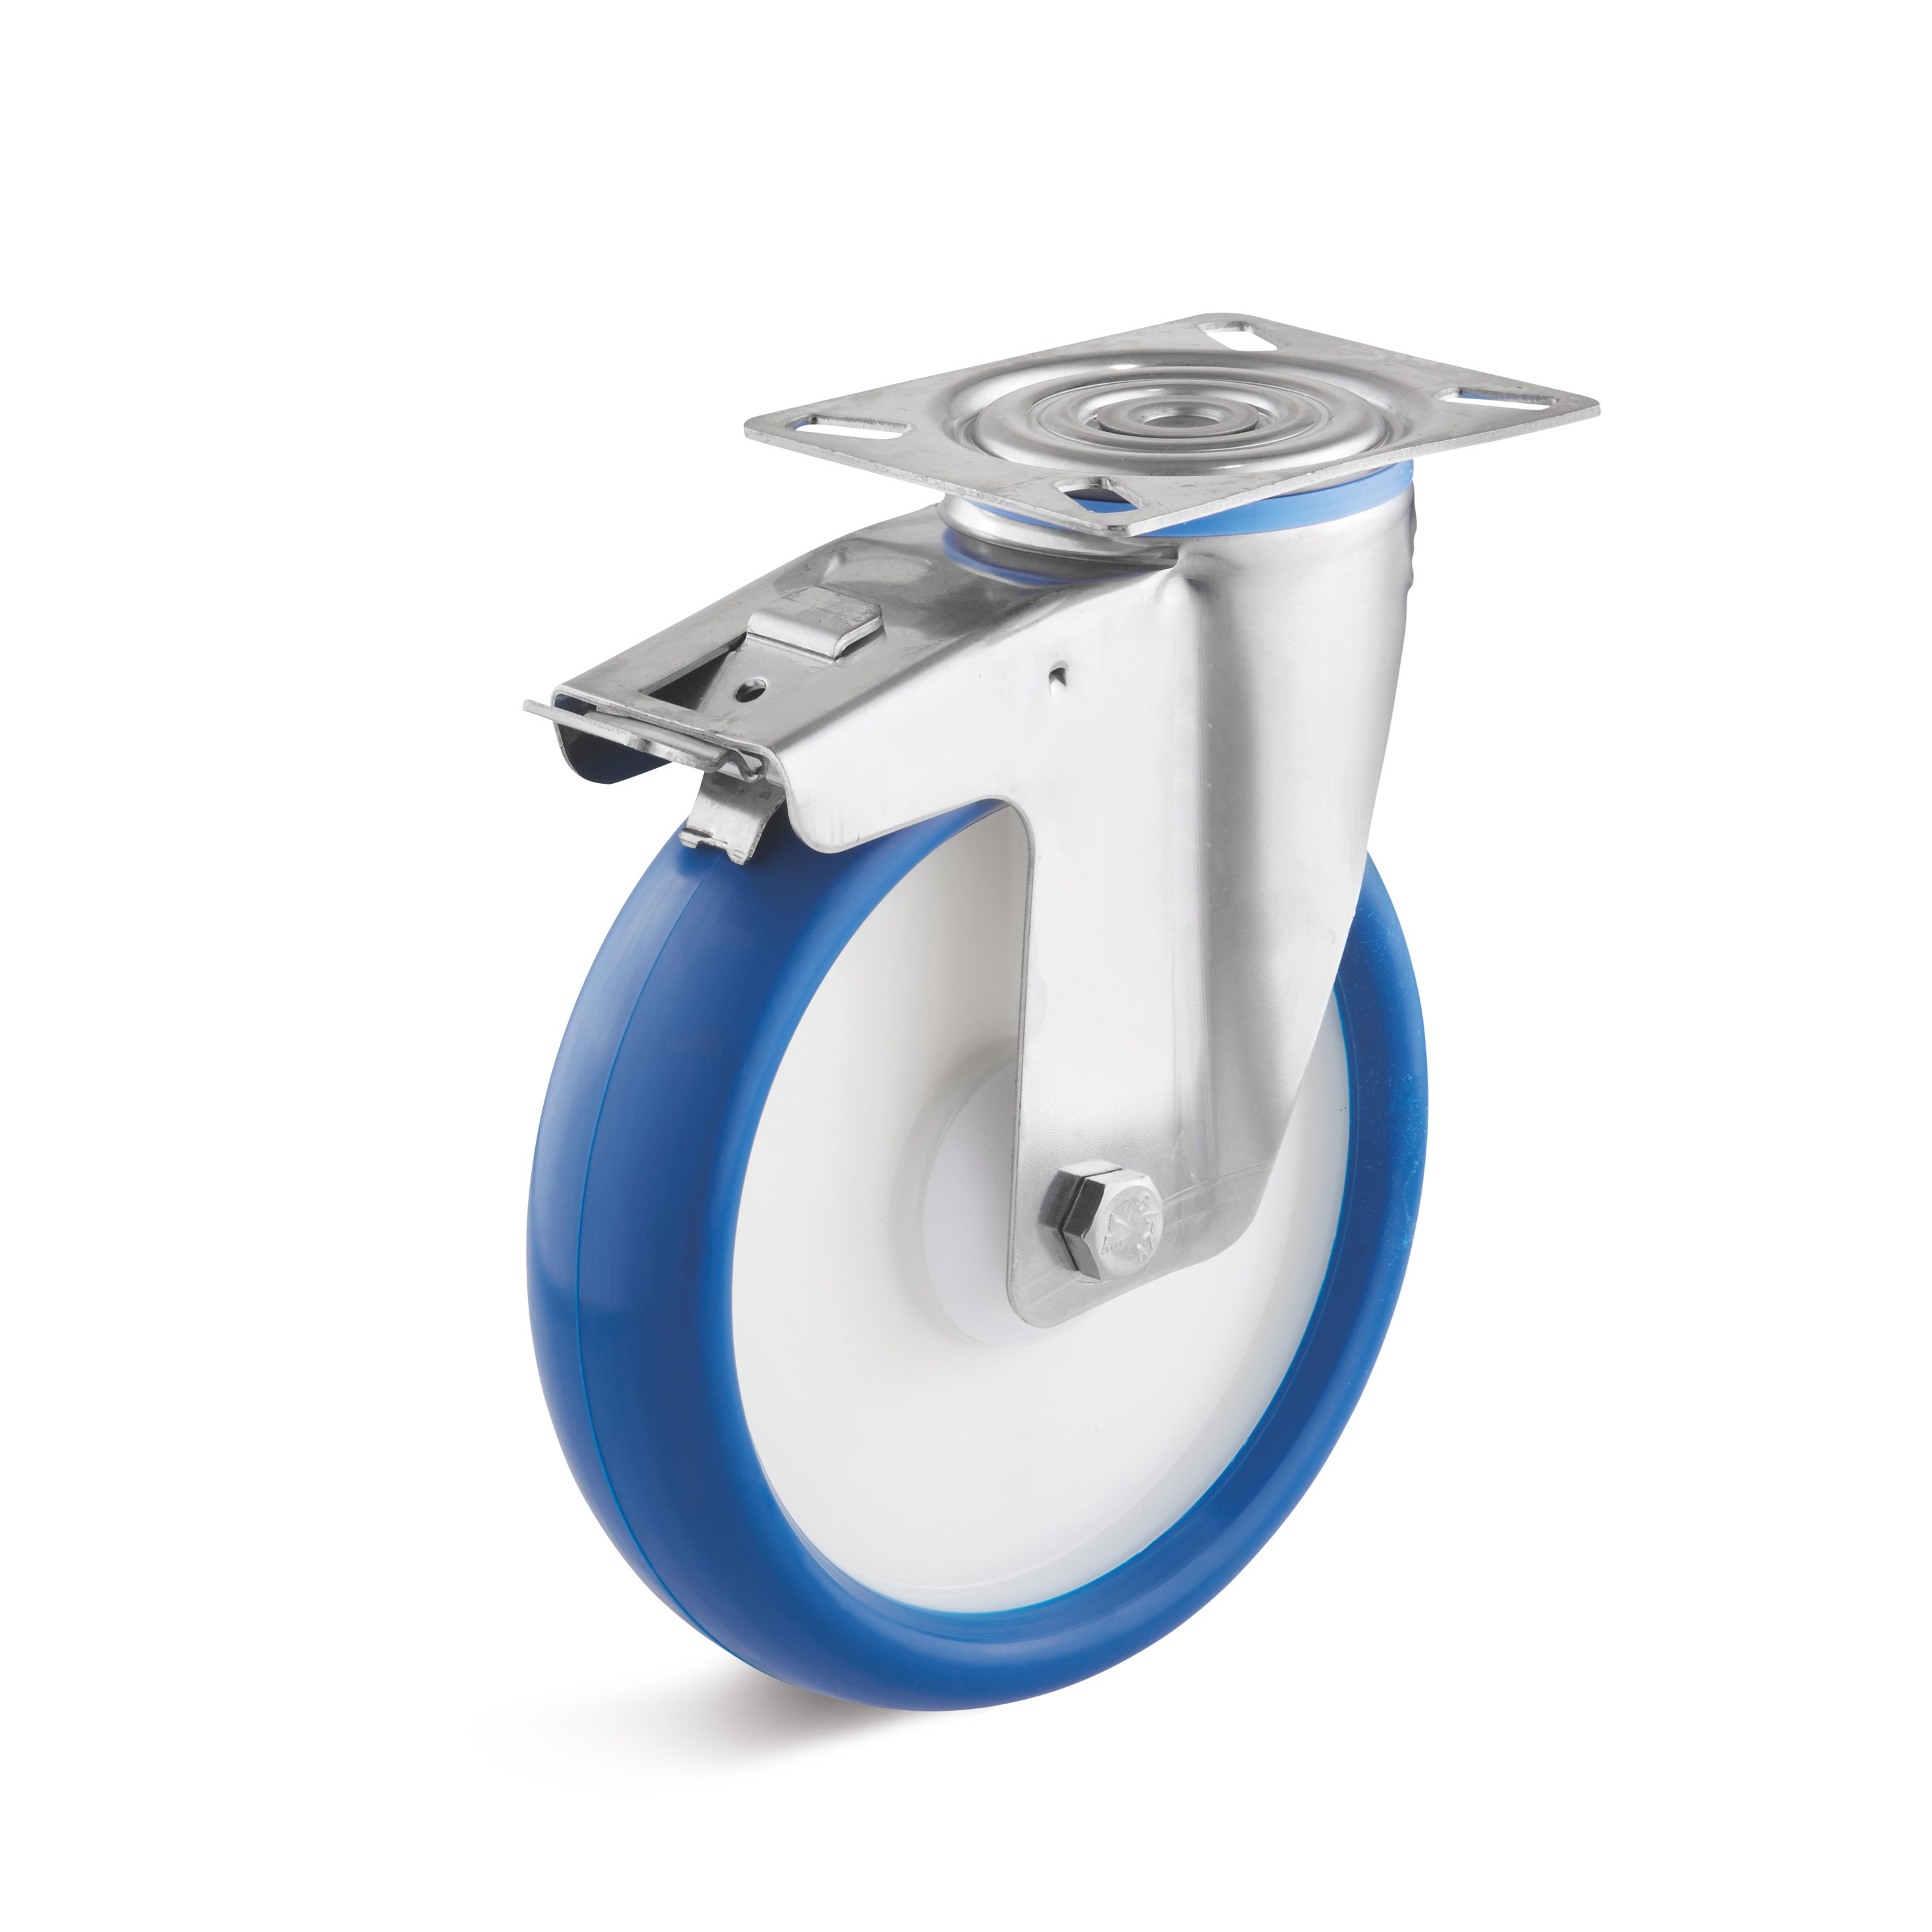 Stainless steel swivel castor with double stop and polyurethane wheel